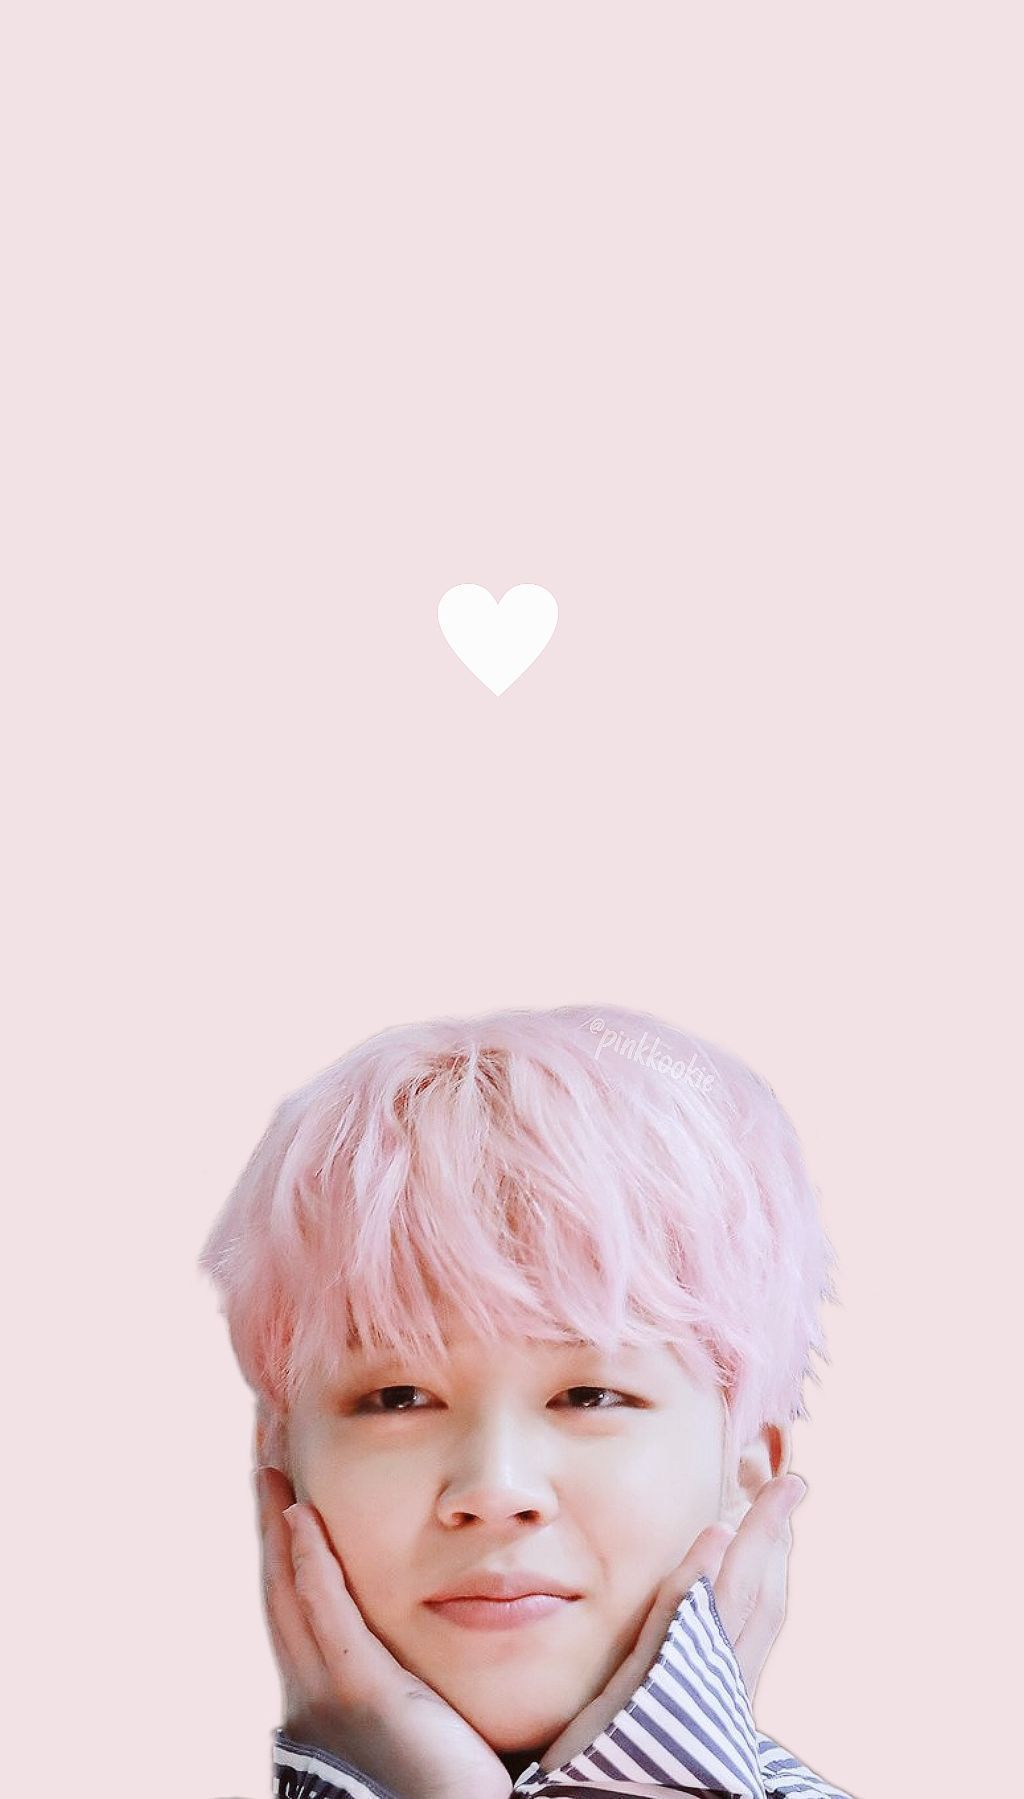 Cute Jimin Wallpapers Top Free Cute Jimin Backgrounds